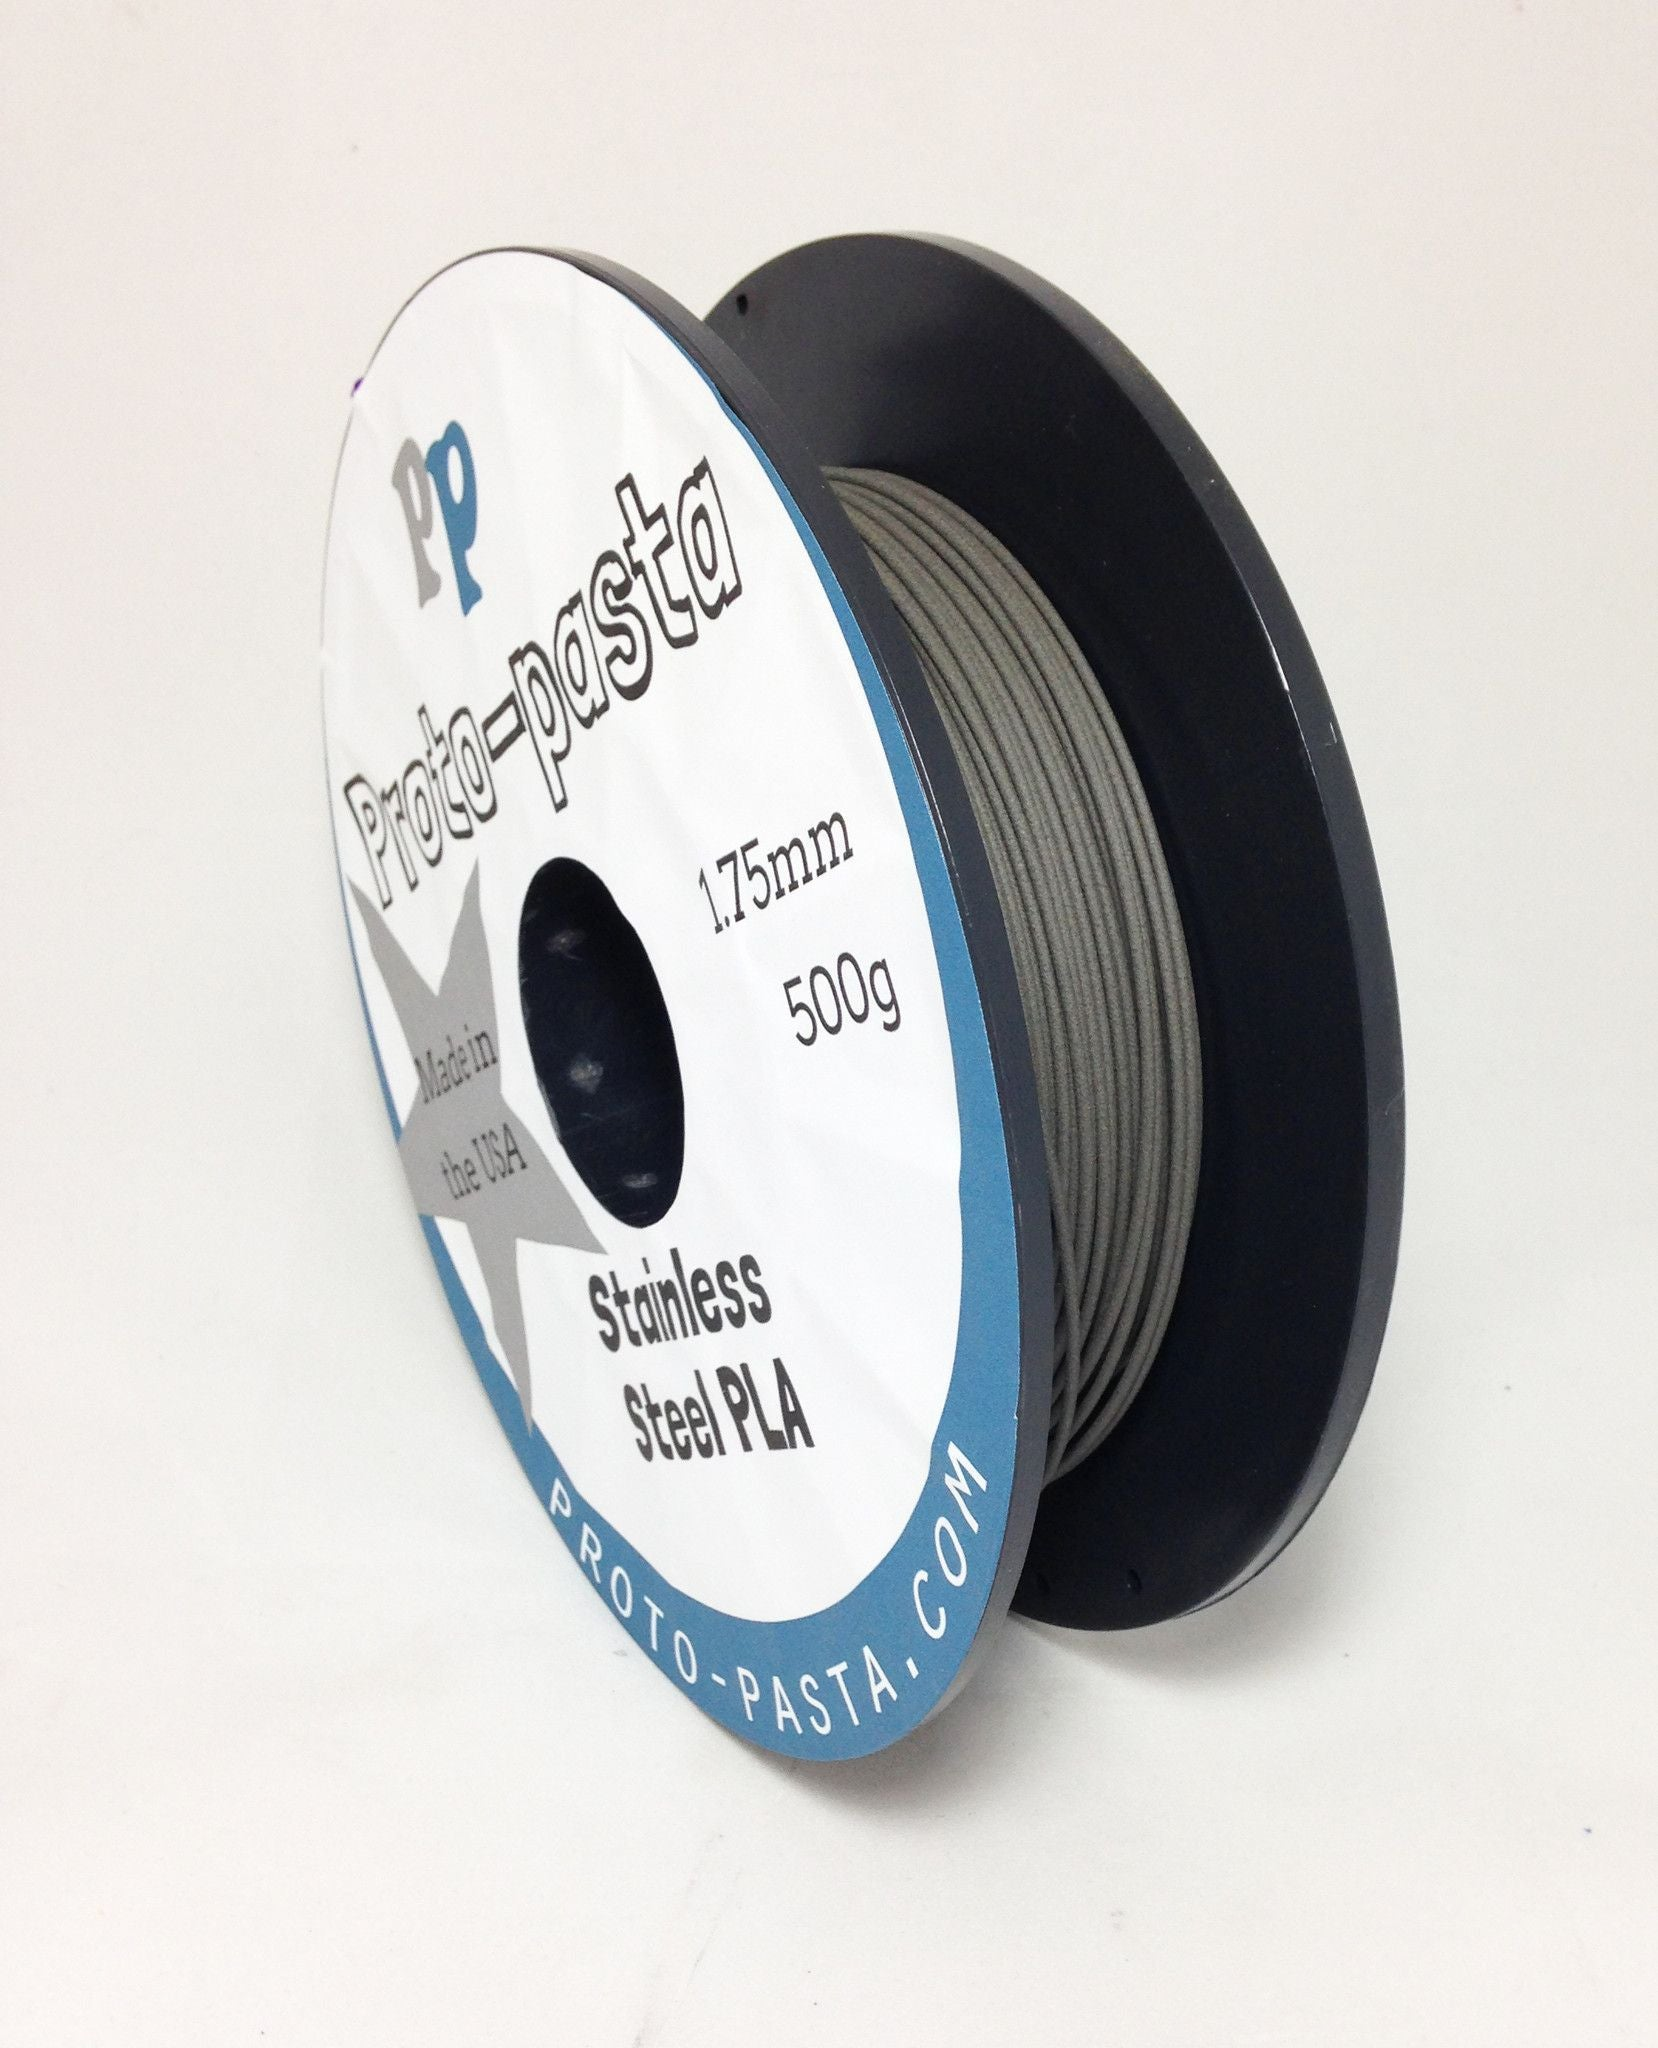 Proto-Pasta Stainless Steel PLA 1.75MM x 500g